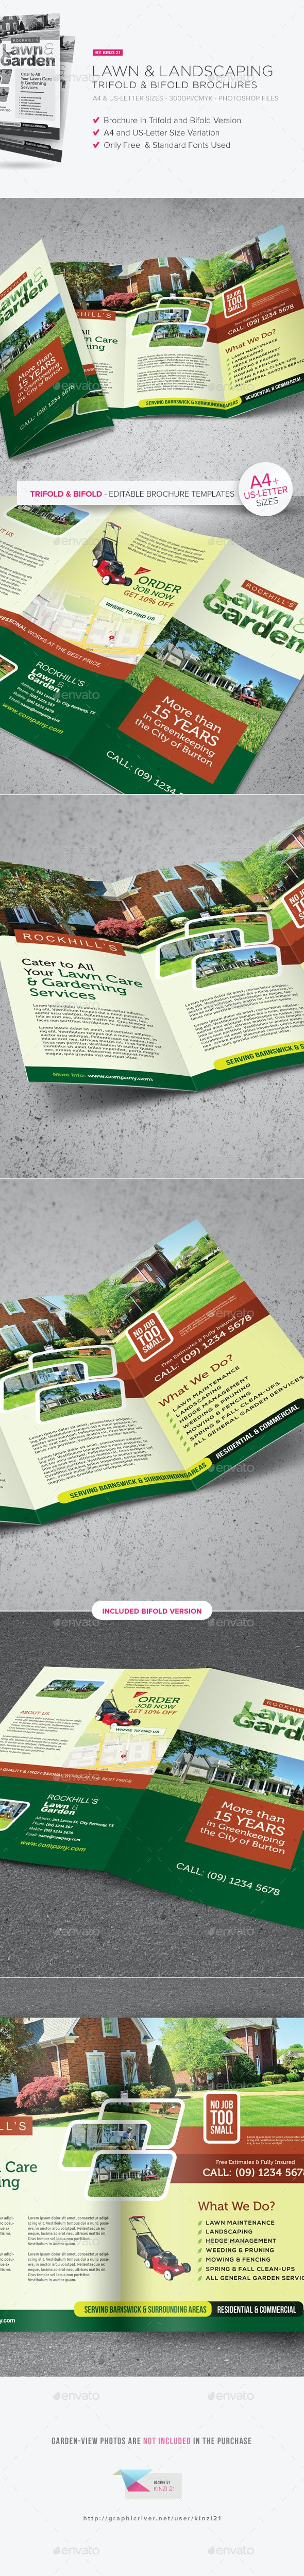 Lawn & Landscaping Trifold and Bifold  Brochure Templates - Corporate Brochures